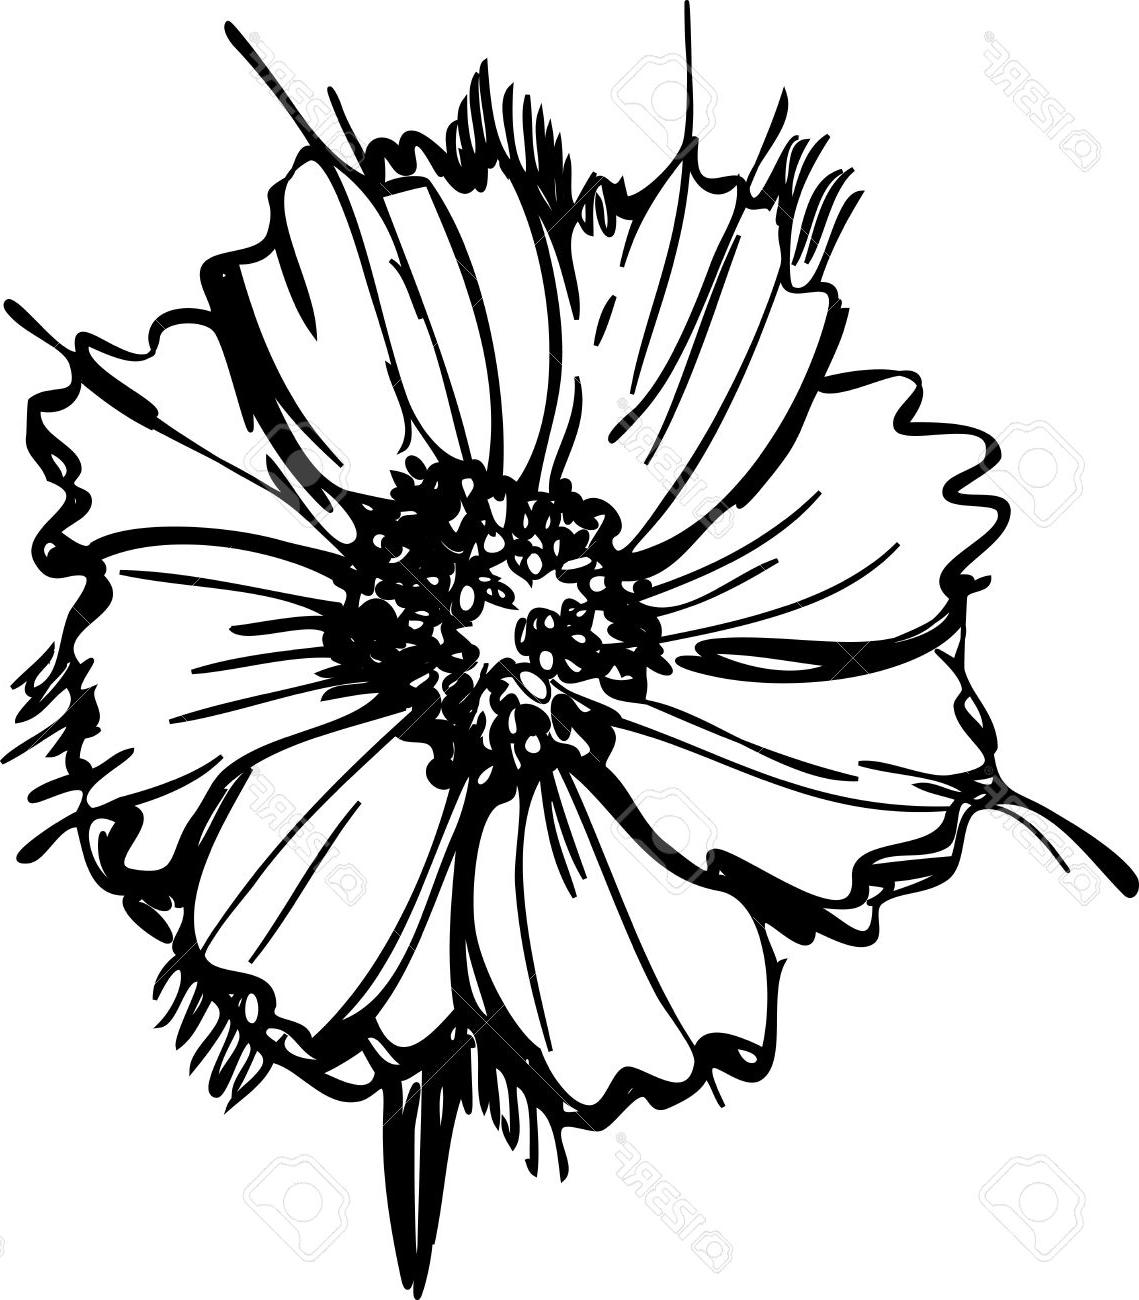 1139x1300 Best Hd Sketch Wild Flower Resembling Daisy Stock Vector Flowers